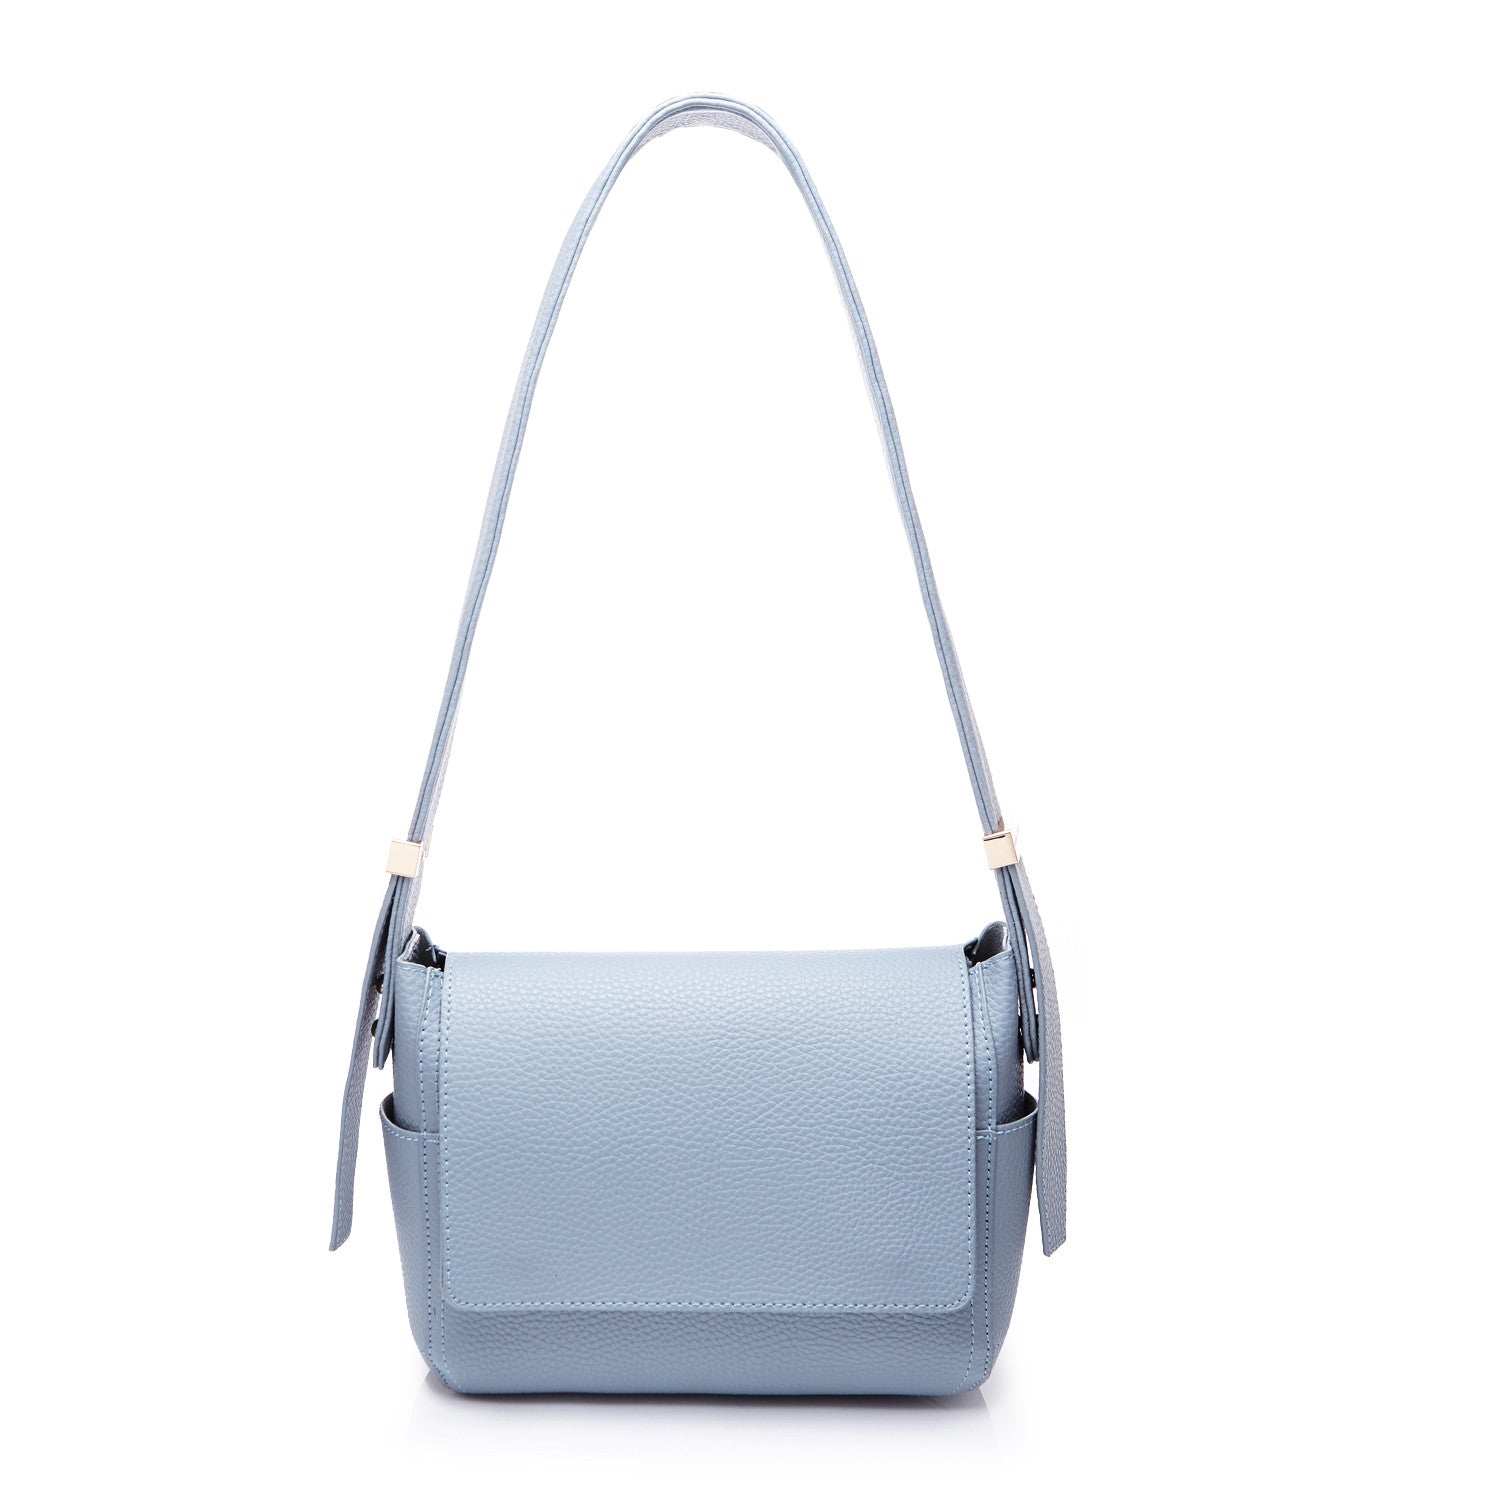 RIBAG MINI - GLACIER BLUE